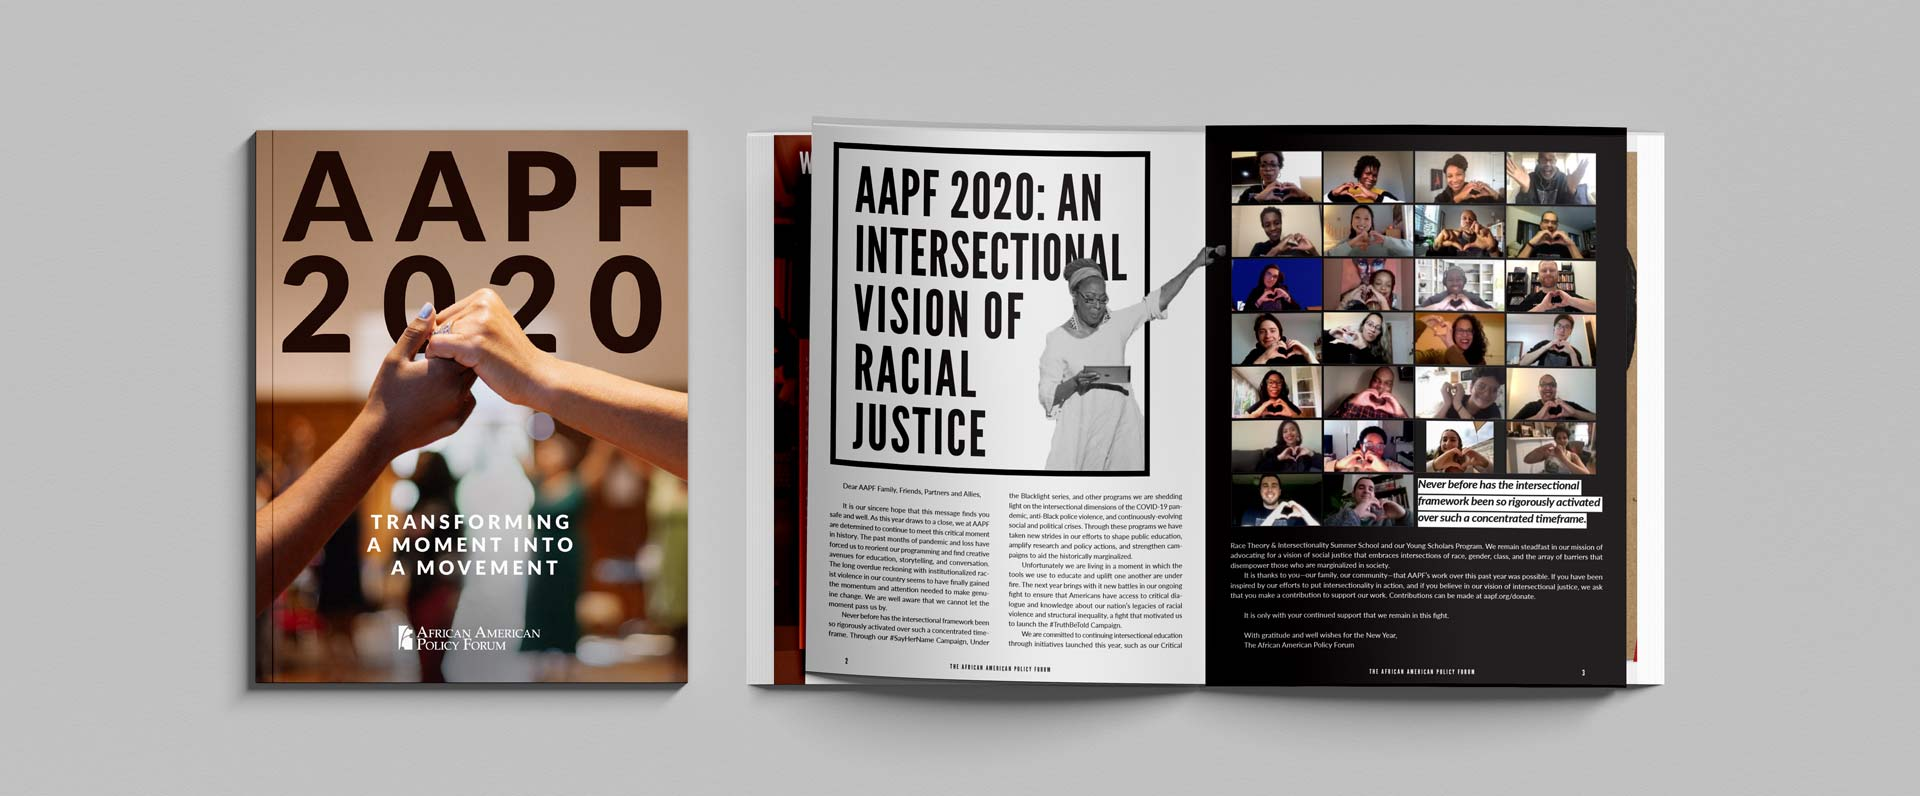 African American Policy Forum annual report image with cover